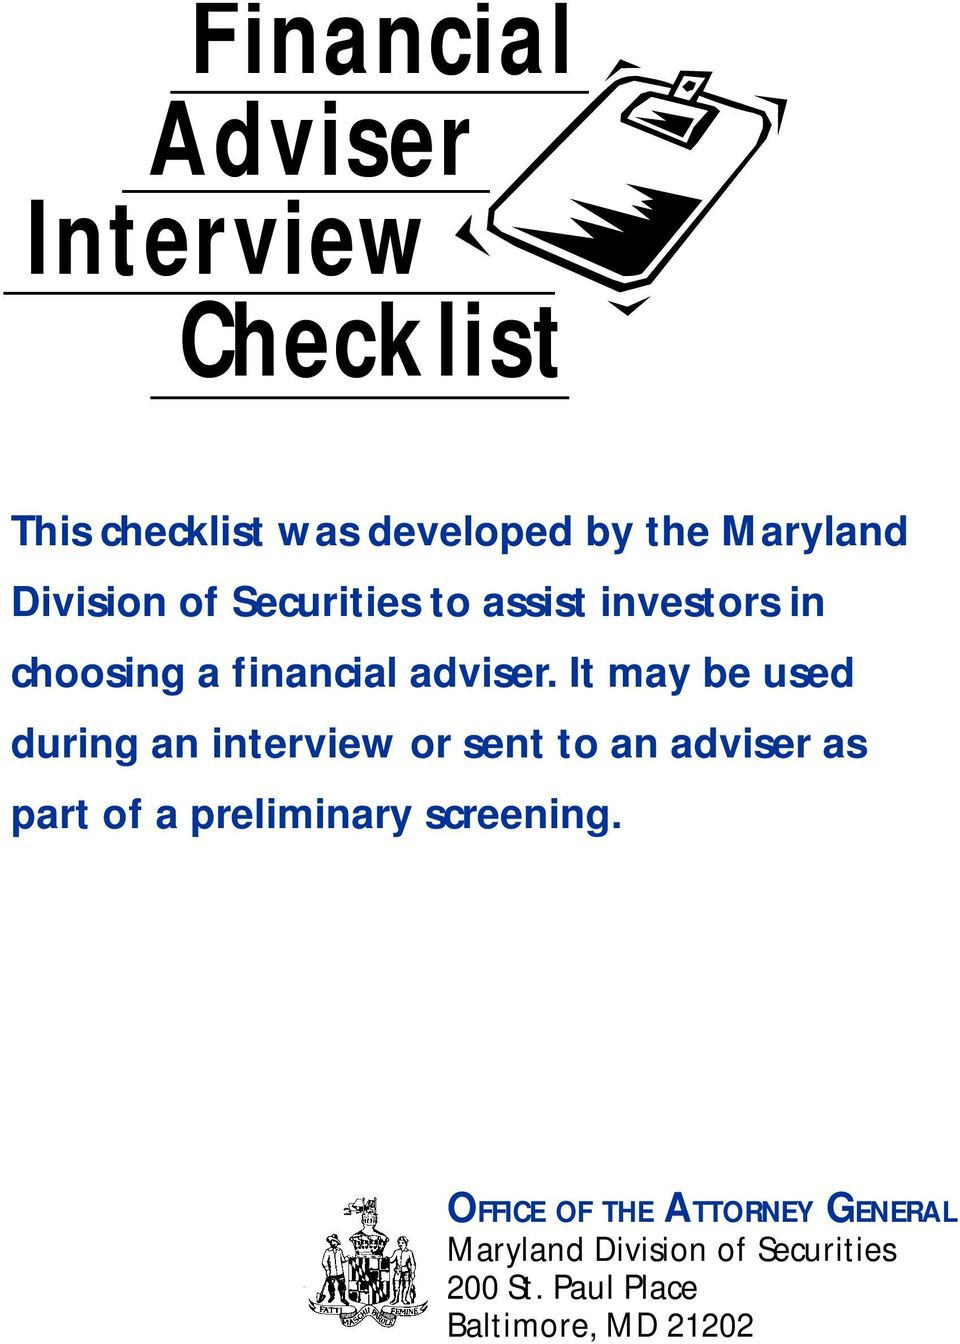 It may be used during an interview or sent to an adviser as part of a preliminary